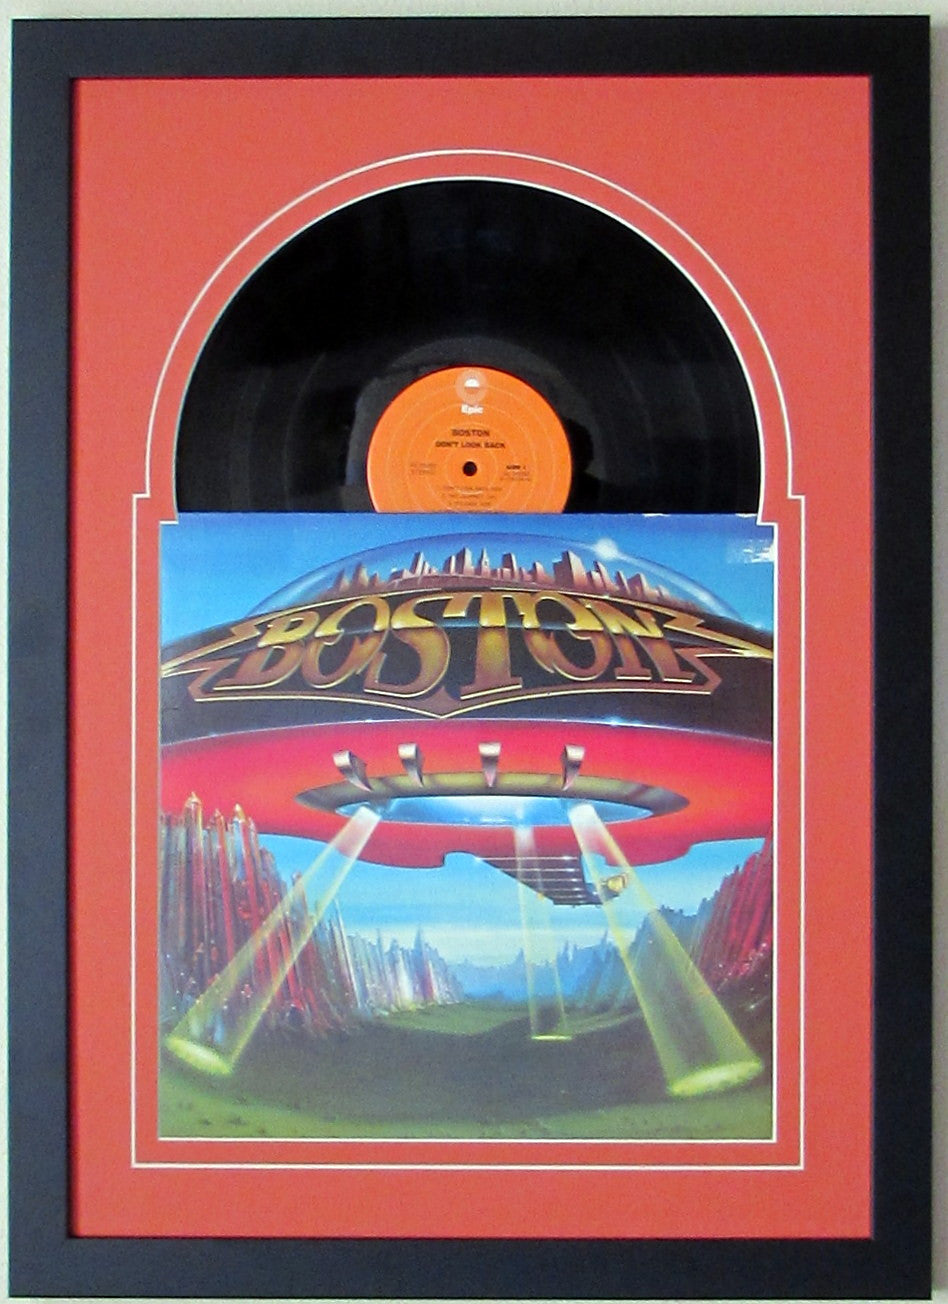 12 Quot Lp Vinyl Or Laserdisc Frame With Sleeve Jukebox Style